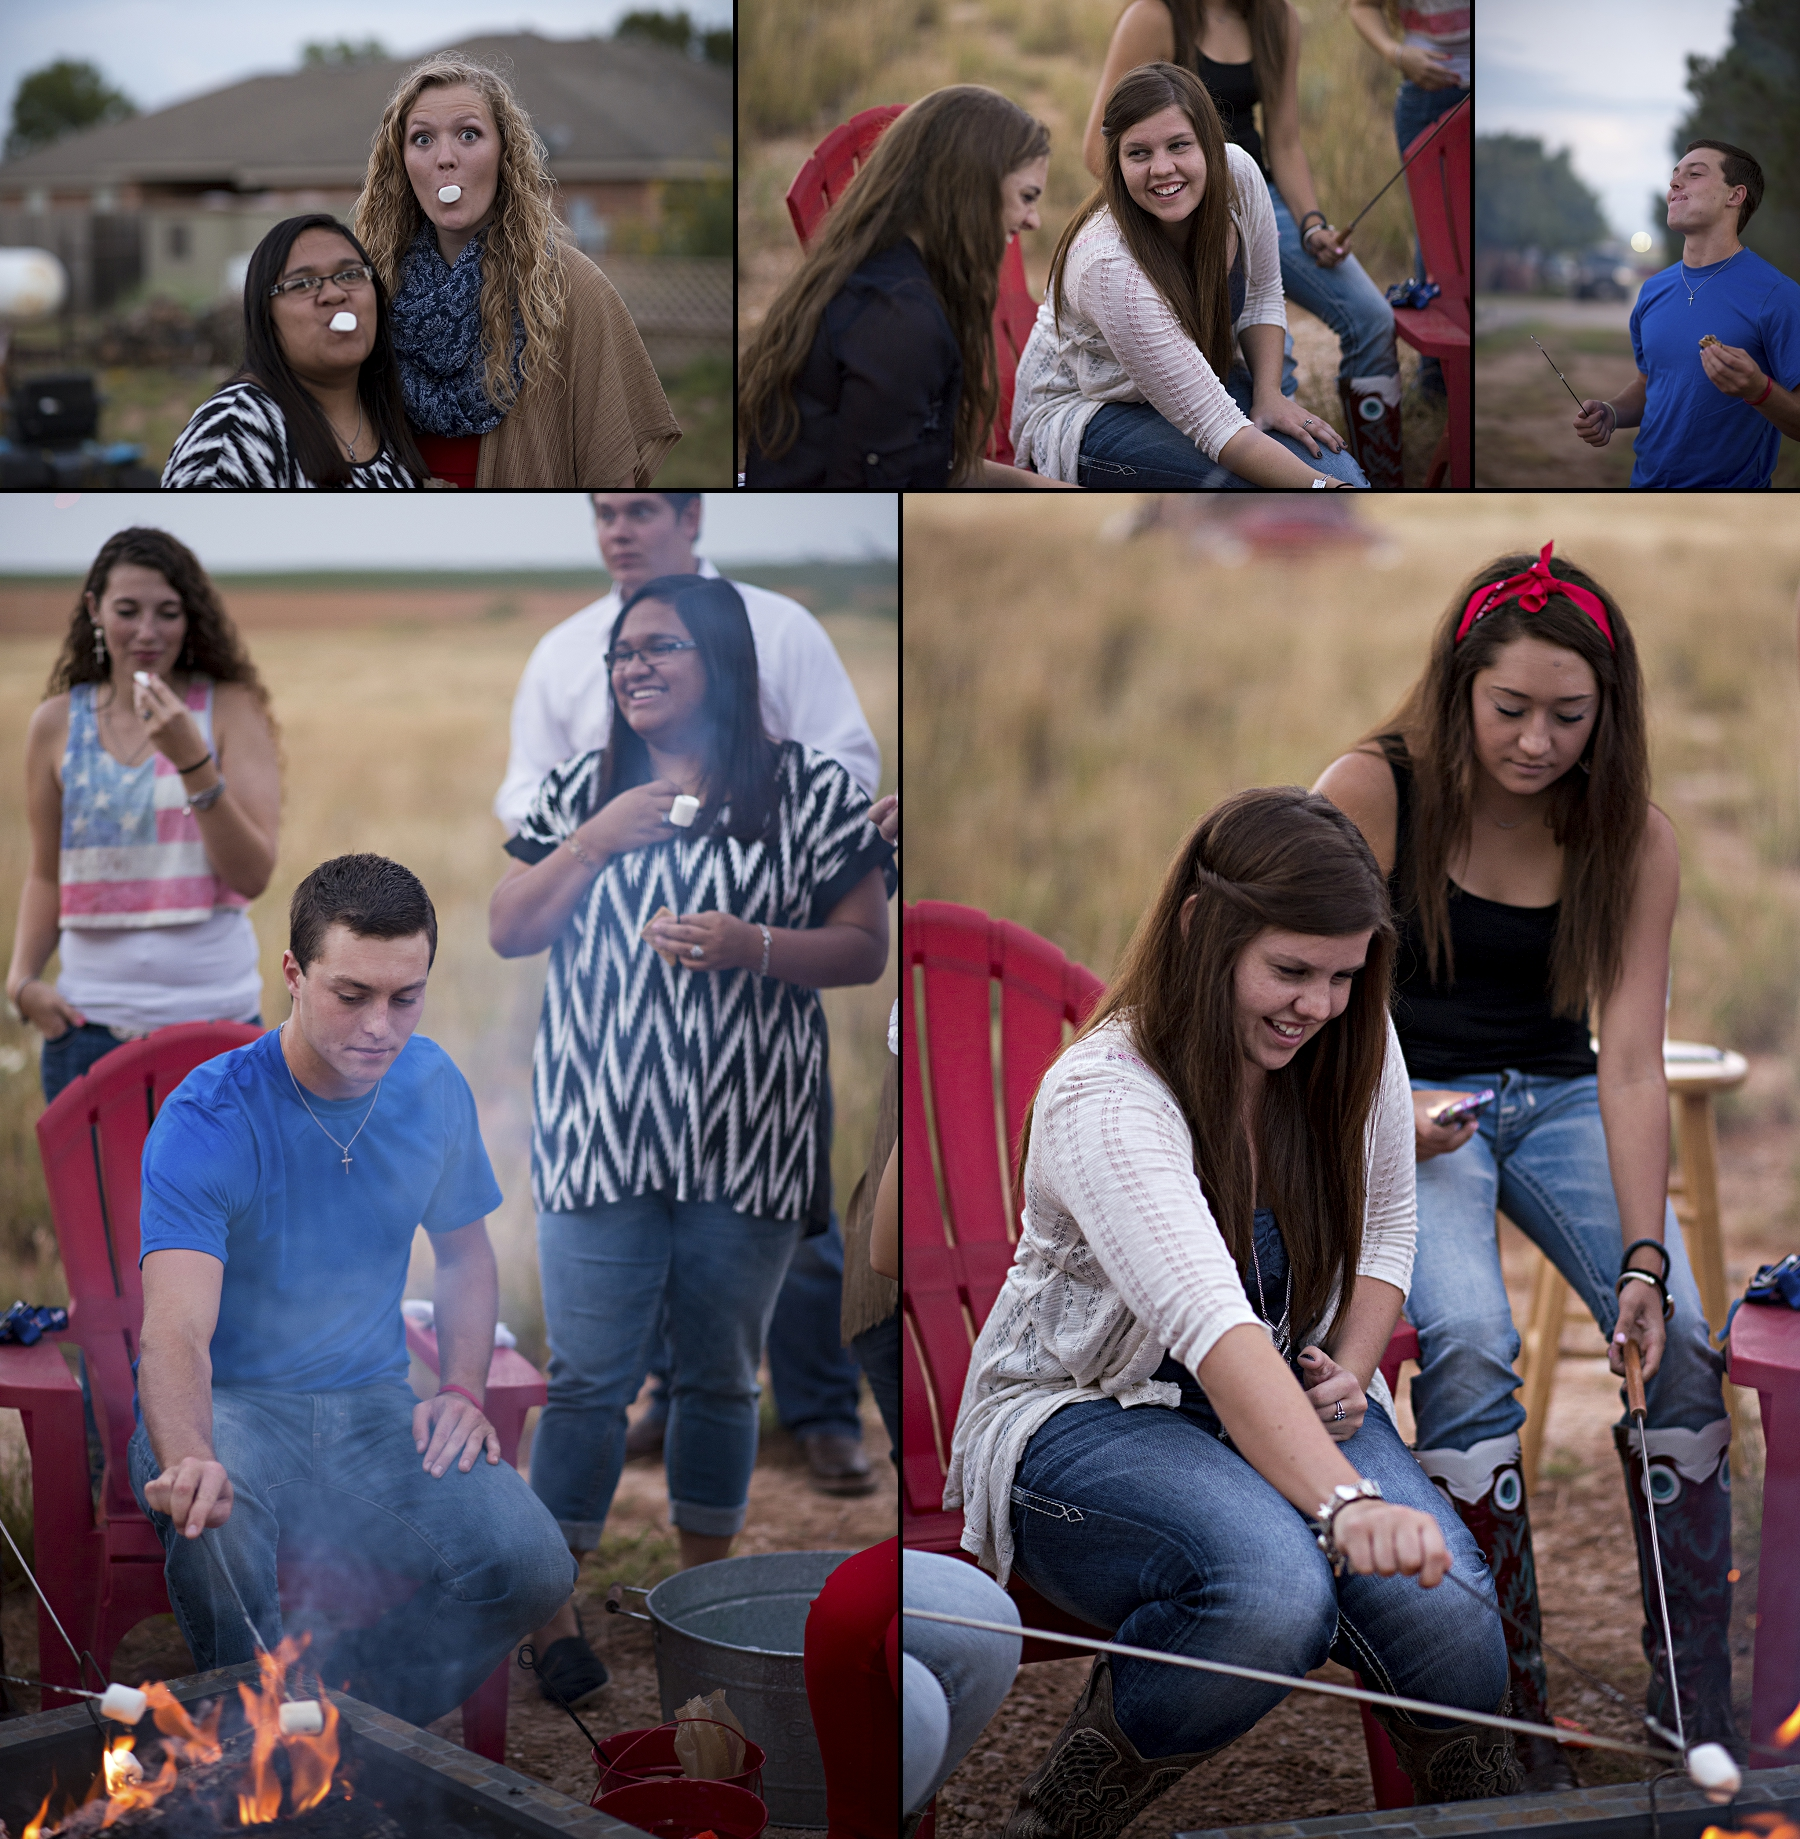 texas, seniors, beauties, Texas flag, Sunset, S'mores, campfire, marshmellows